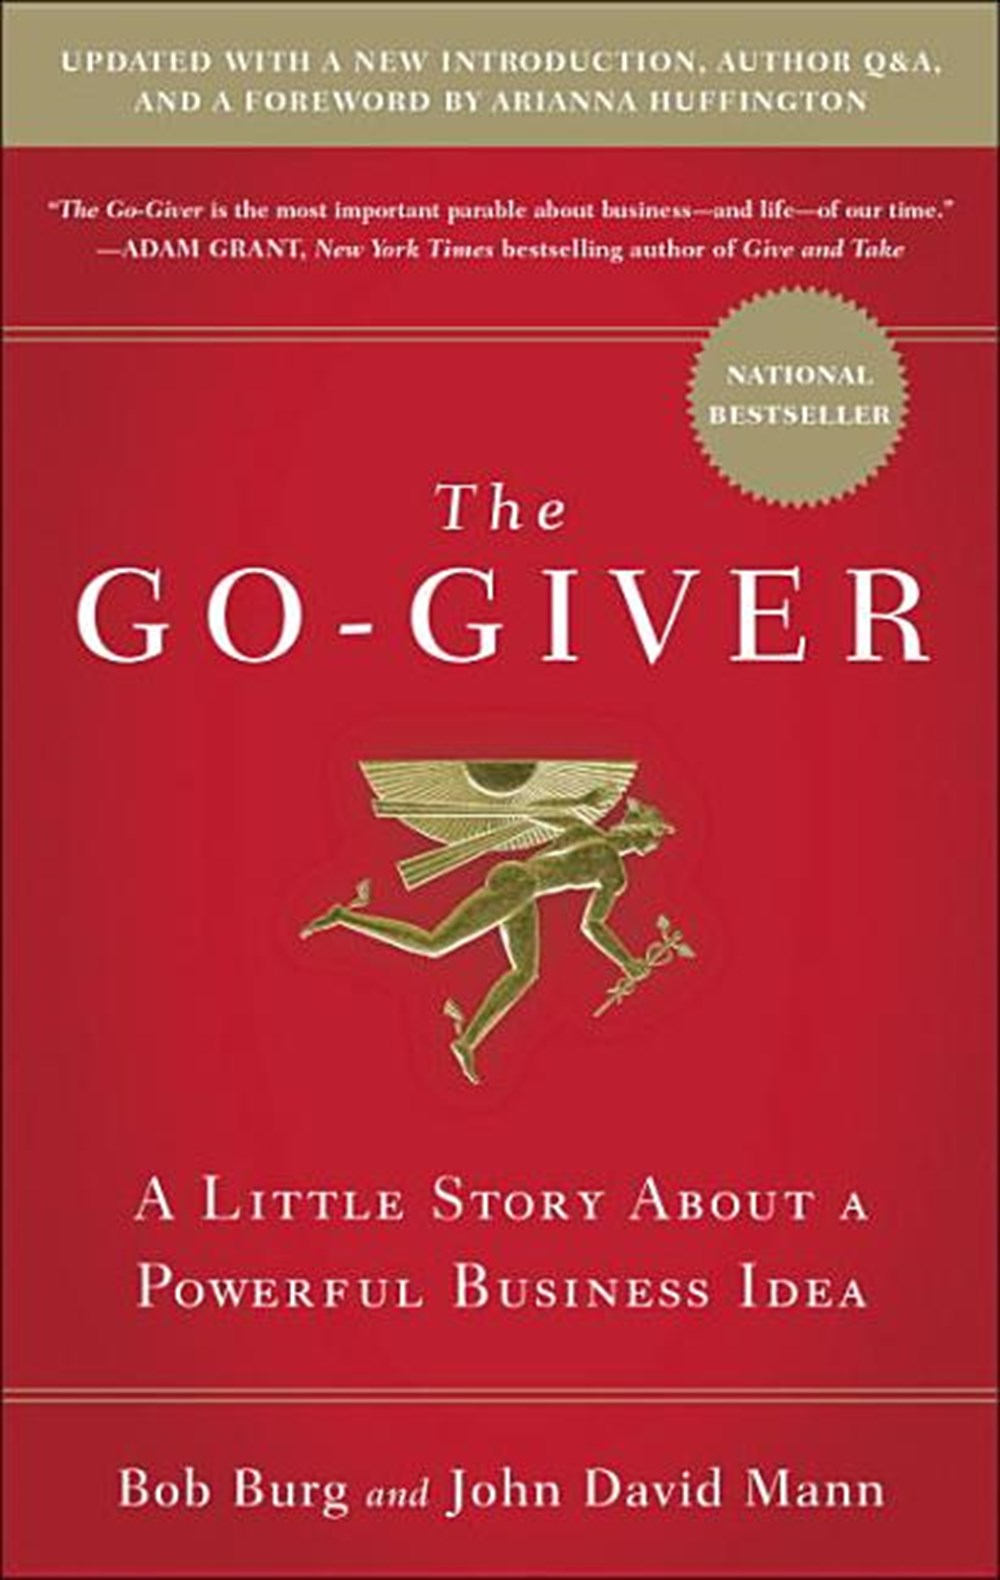 Go-Giver A Little Story about a Powerful Business Idea